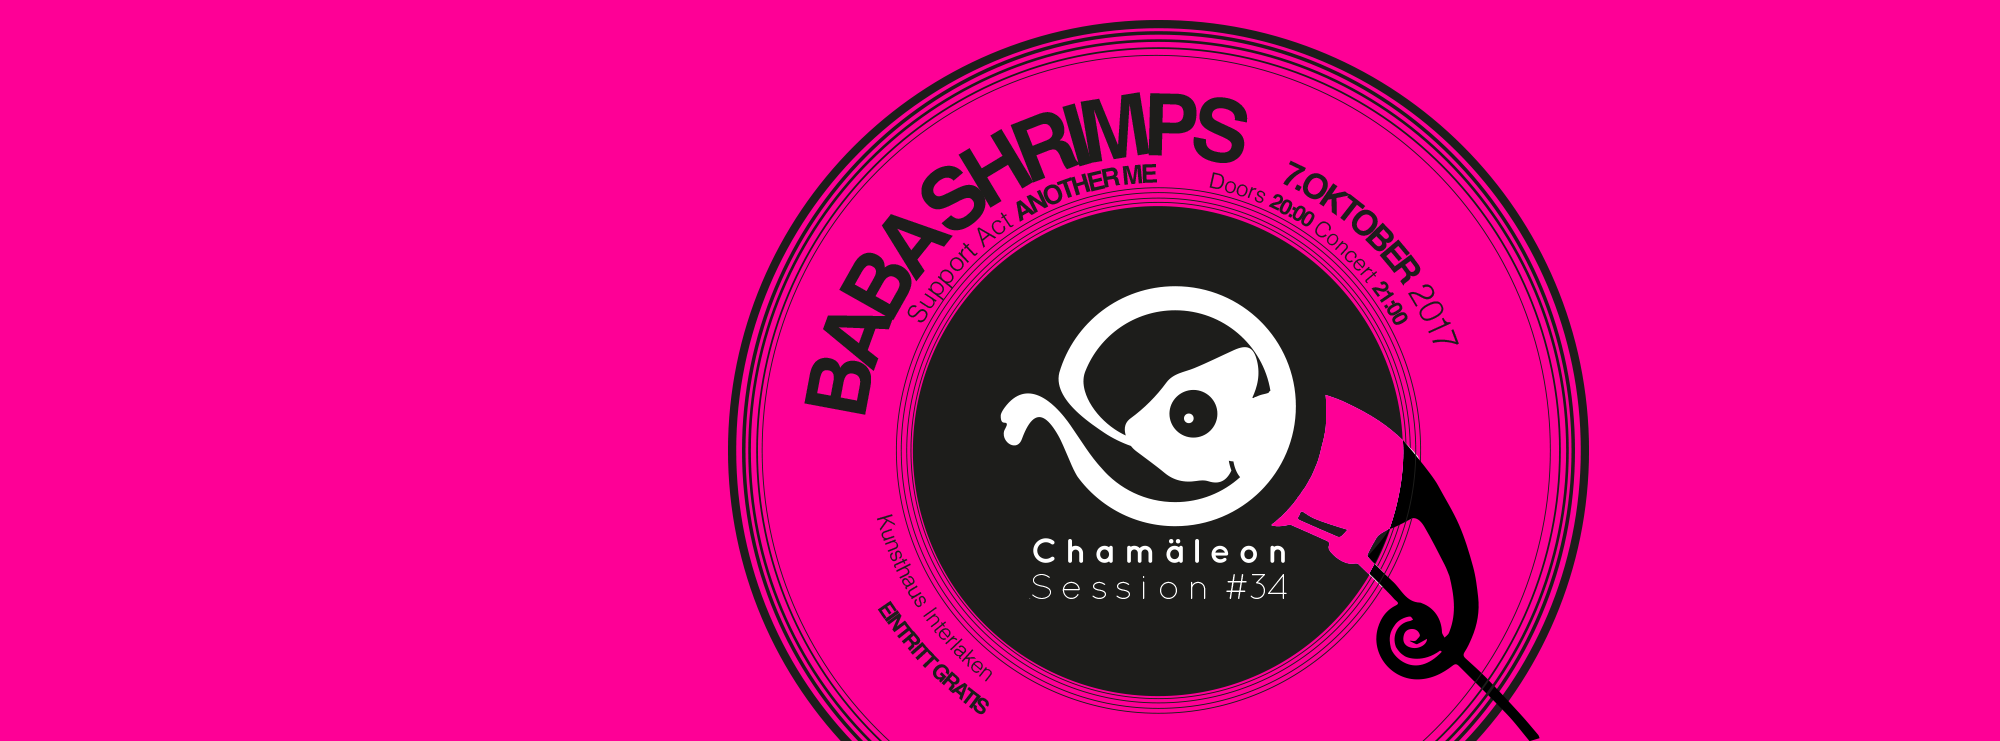 Baba Shrimps Another Me Chamäleon Session 34